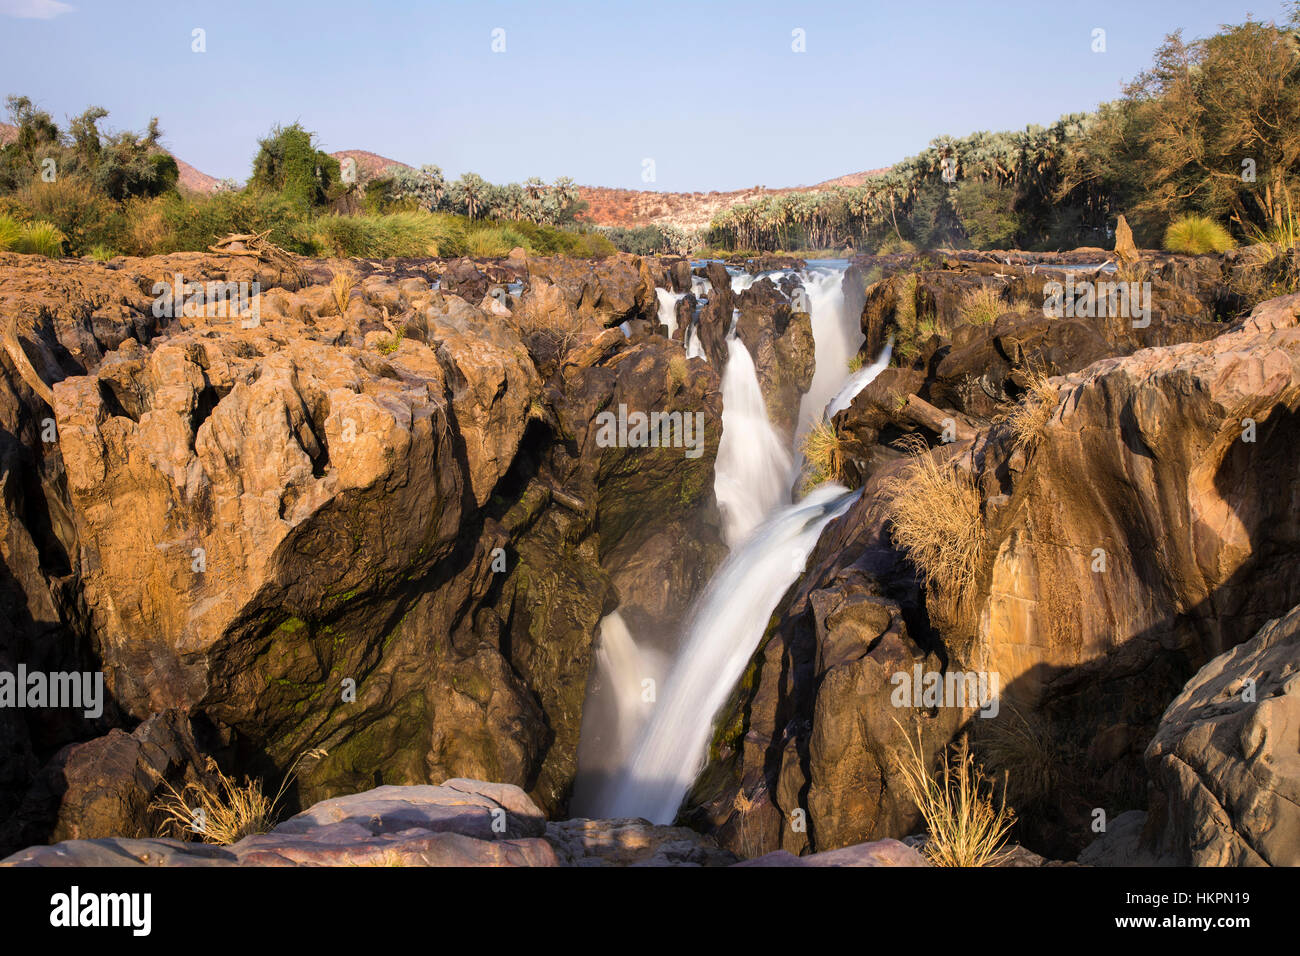 Epupa Waterfalls, also known as Monte Negro Falls, Kunene River, Kaokoland, Namibia, by Monika Hrdinova/Dembinsky - Stock Image